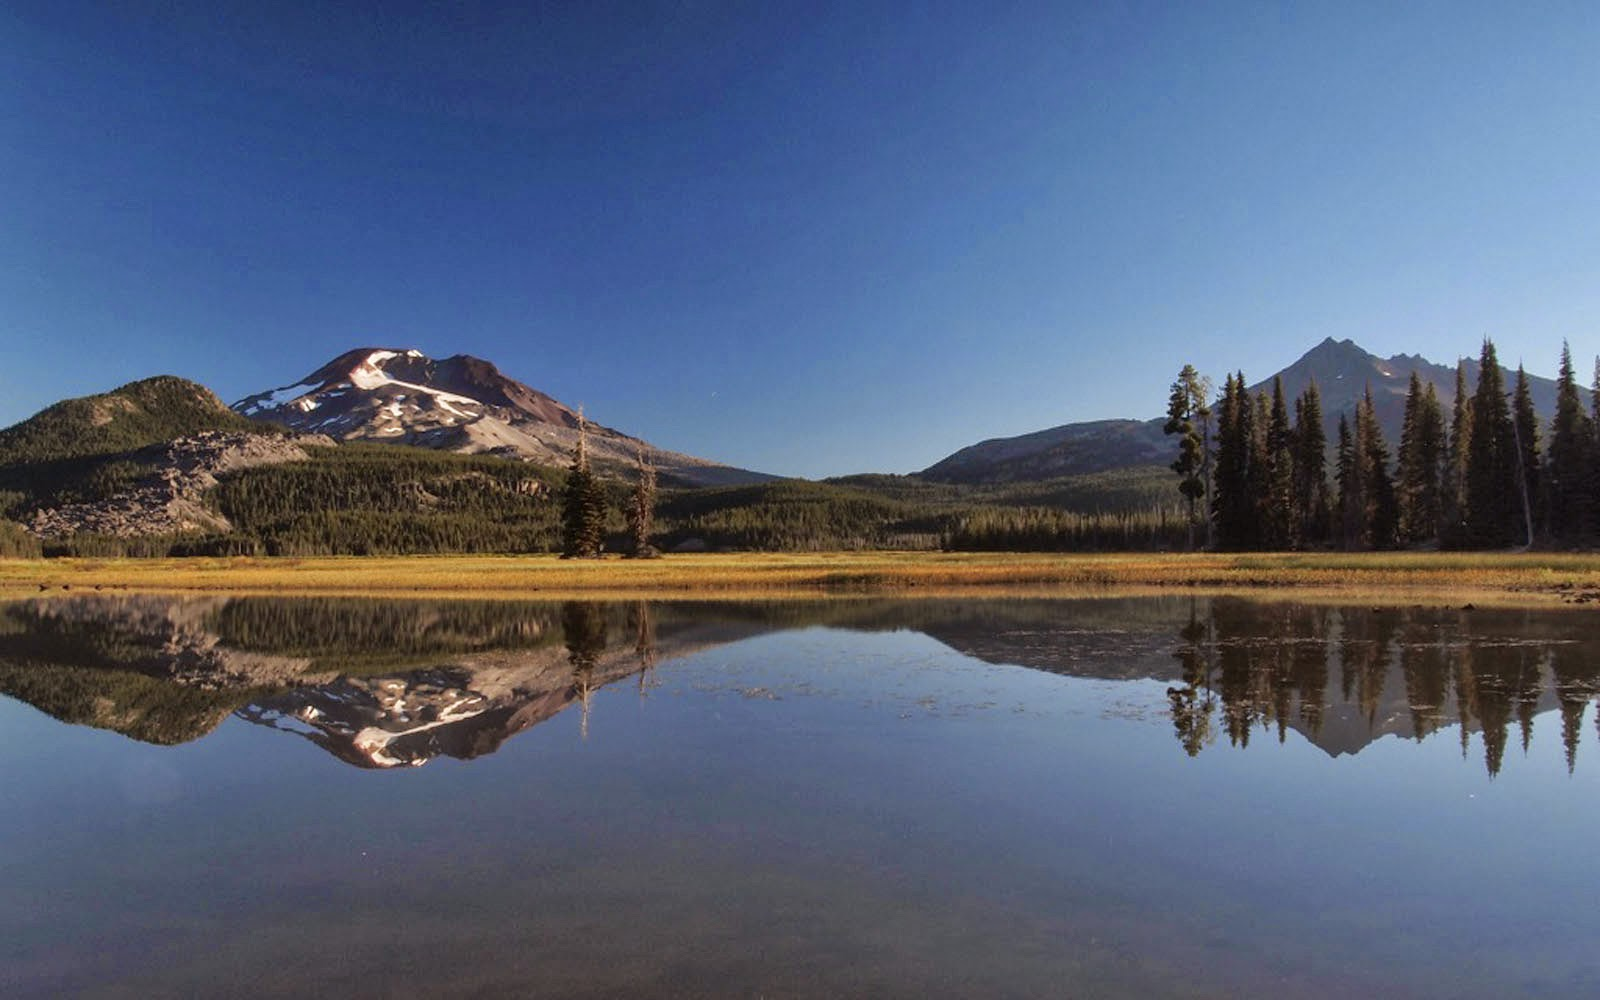 Wallpapers south sister sparks lake wallpapers - Nature background pictures for computer ...